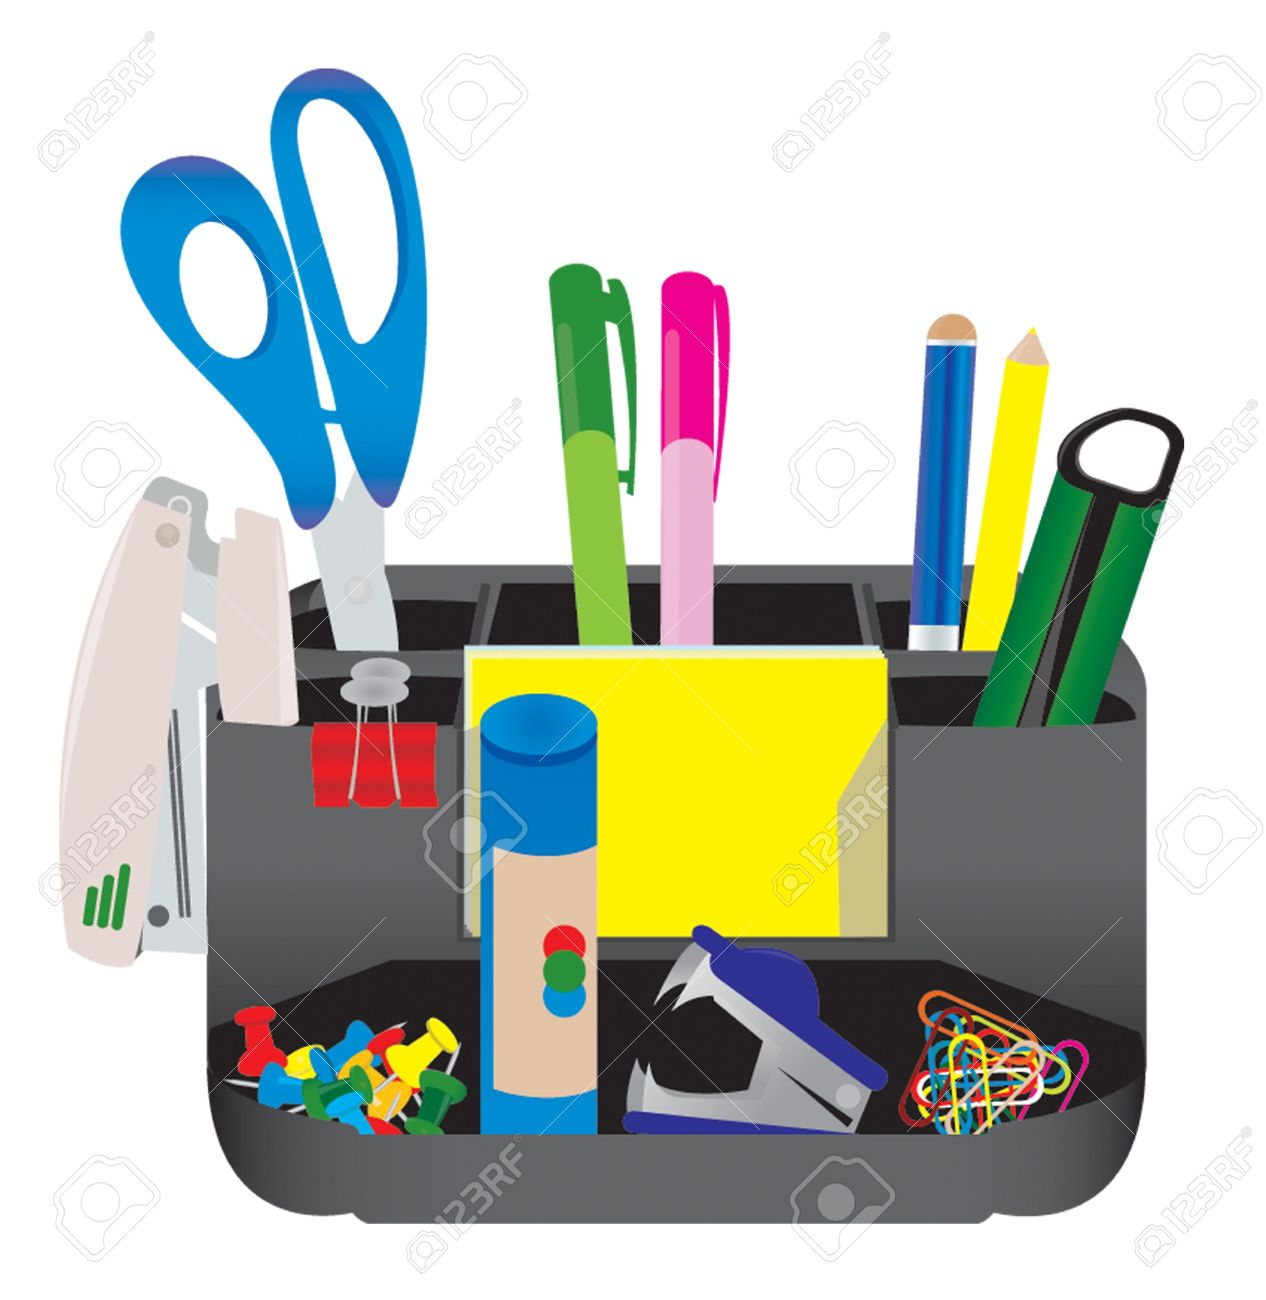 Office Tools Royalty Free Cliparts, Vectors, And Stock.